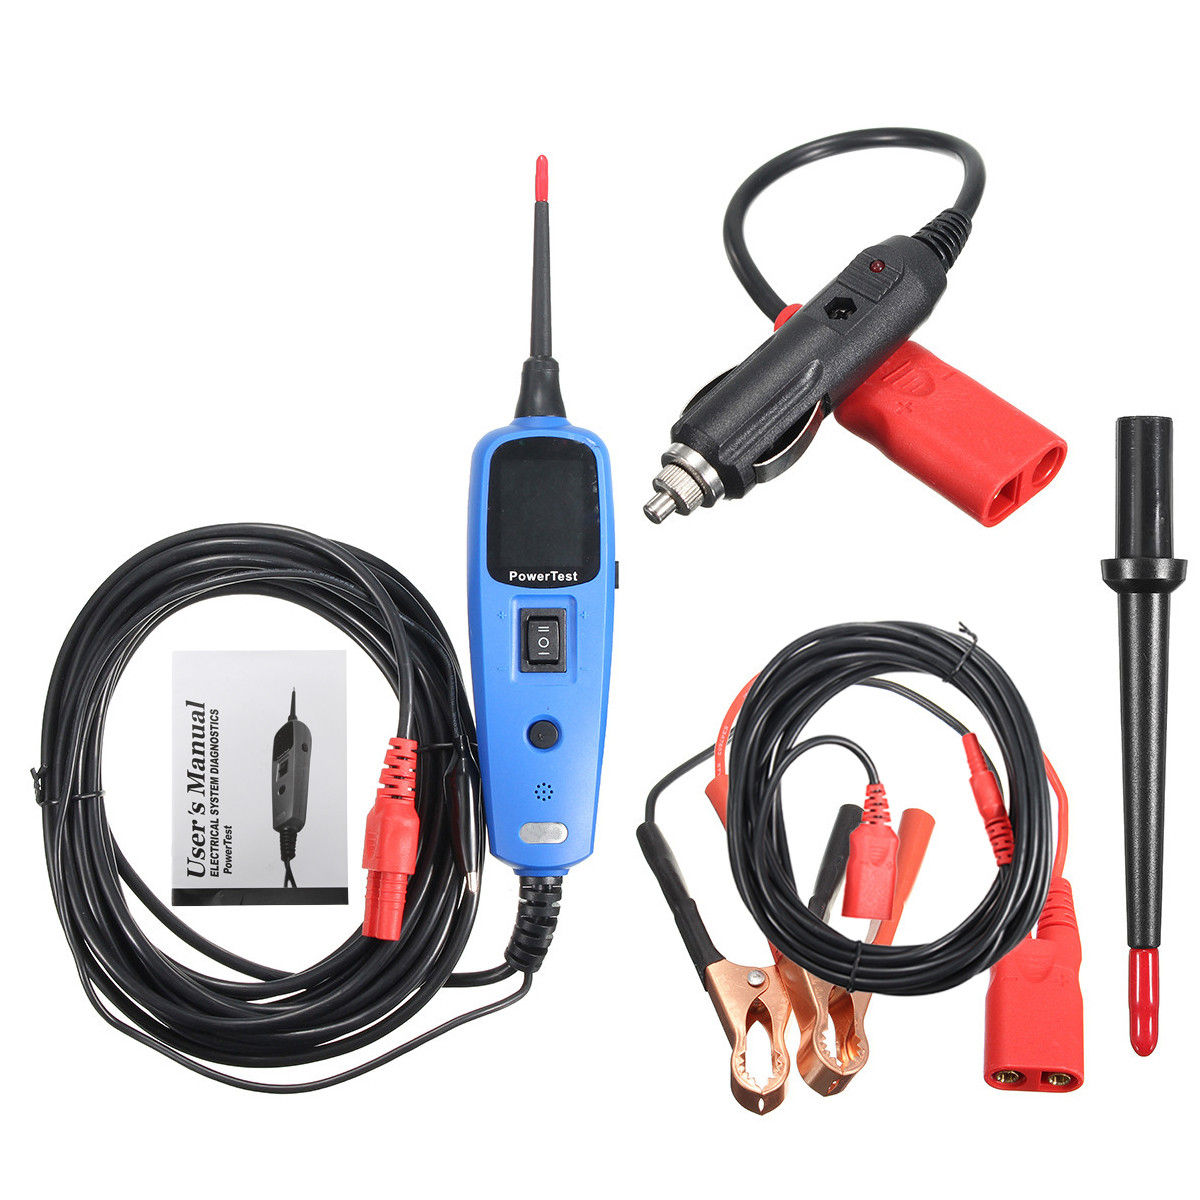 Power Probe Circuit Tester : Automotive power probe supply circuit tester electrical